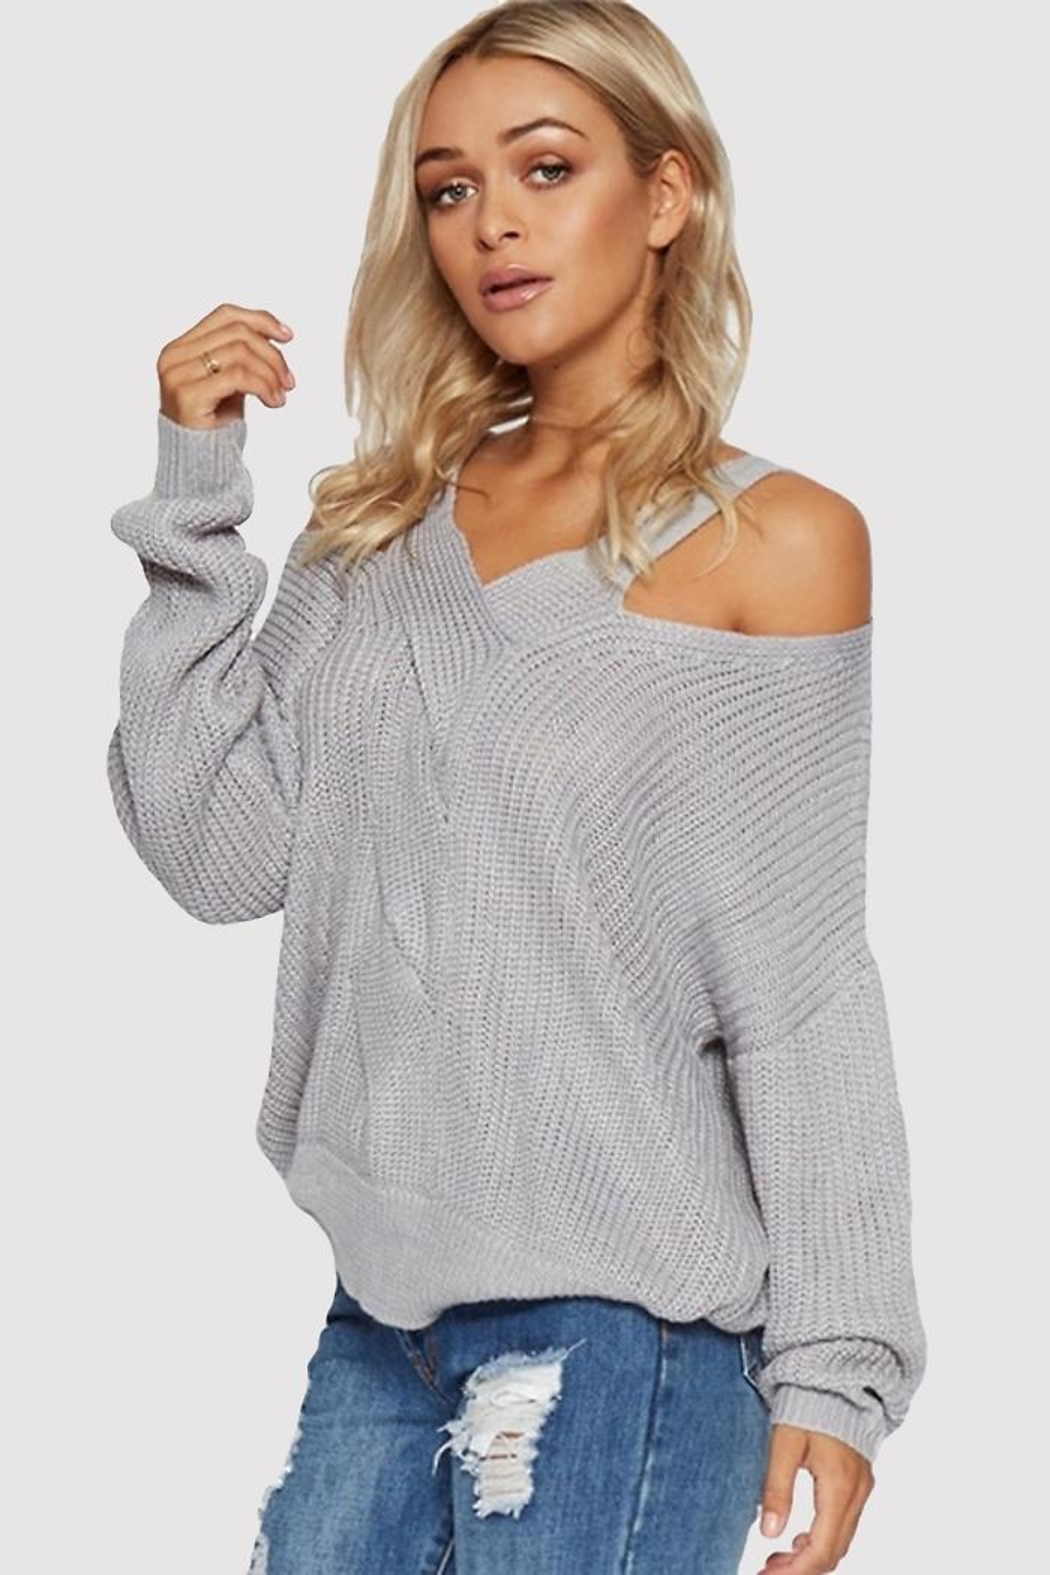 People Outfitter Silver Light Top - Back Cropped Image